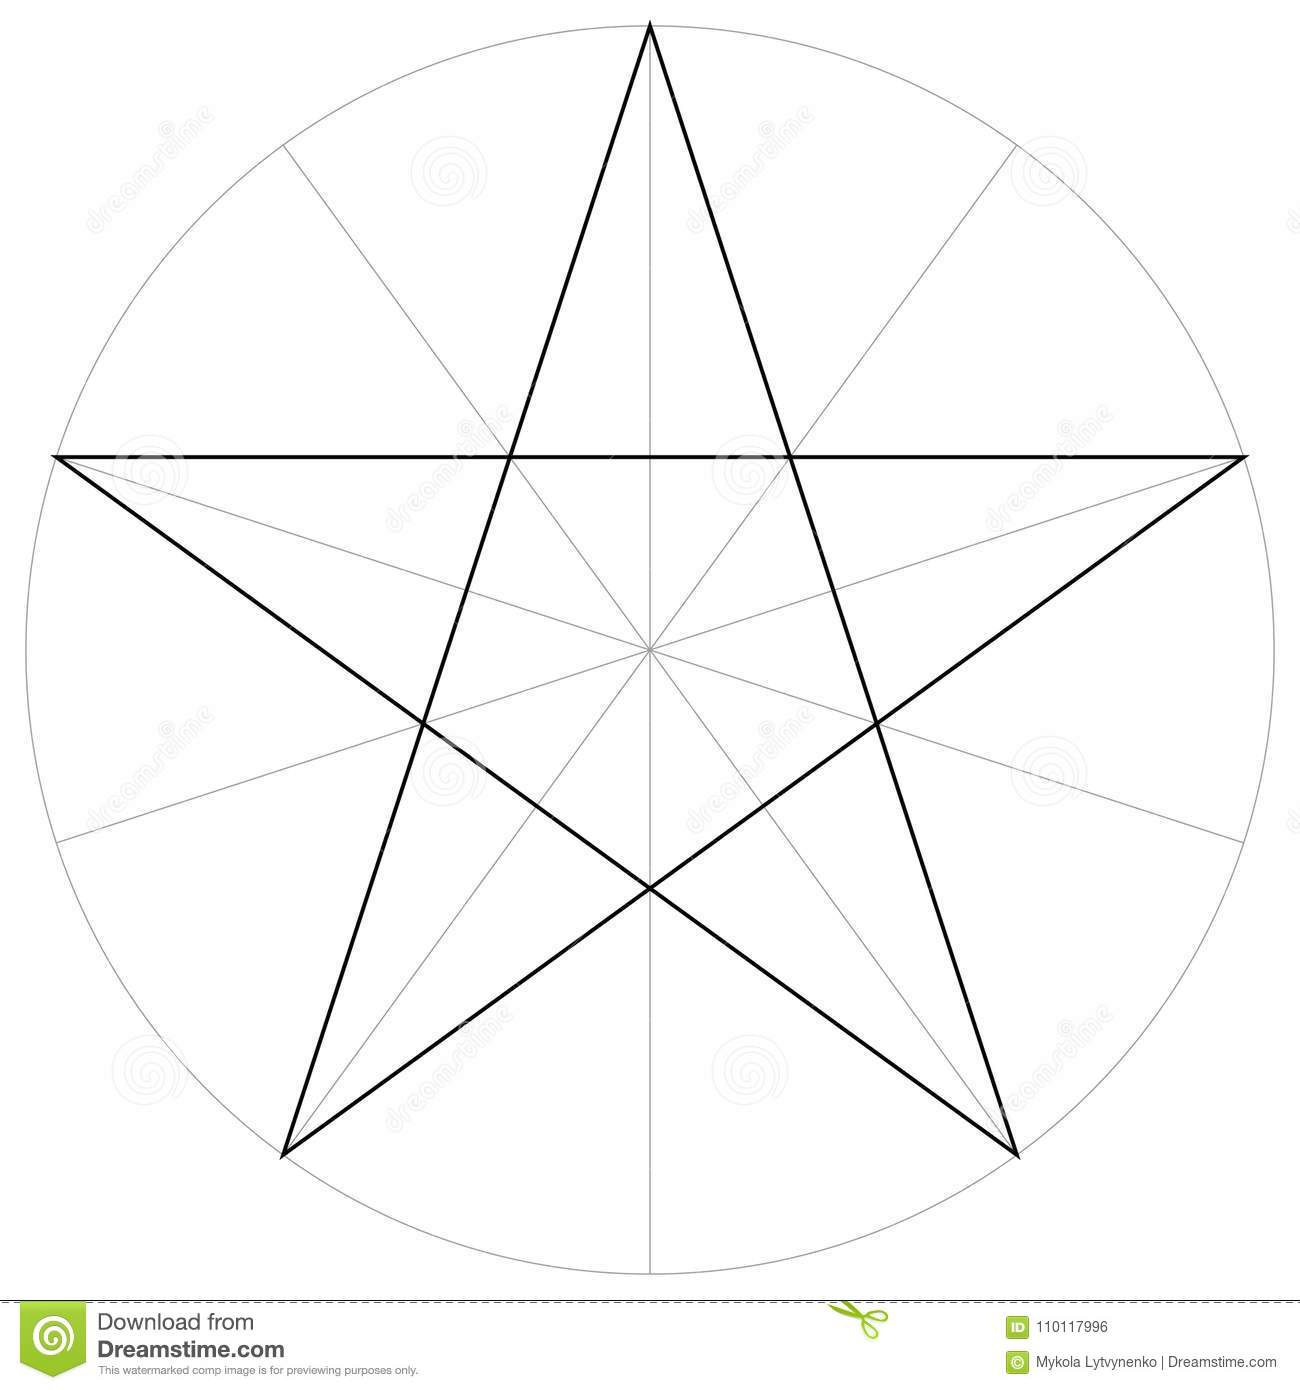 d3b27fbb7bb6c Correct form shape template geometric shape of the pentagram five pointed  star, vector drawing the